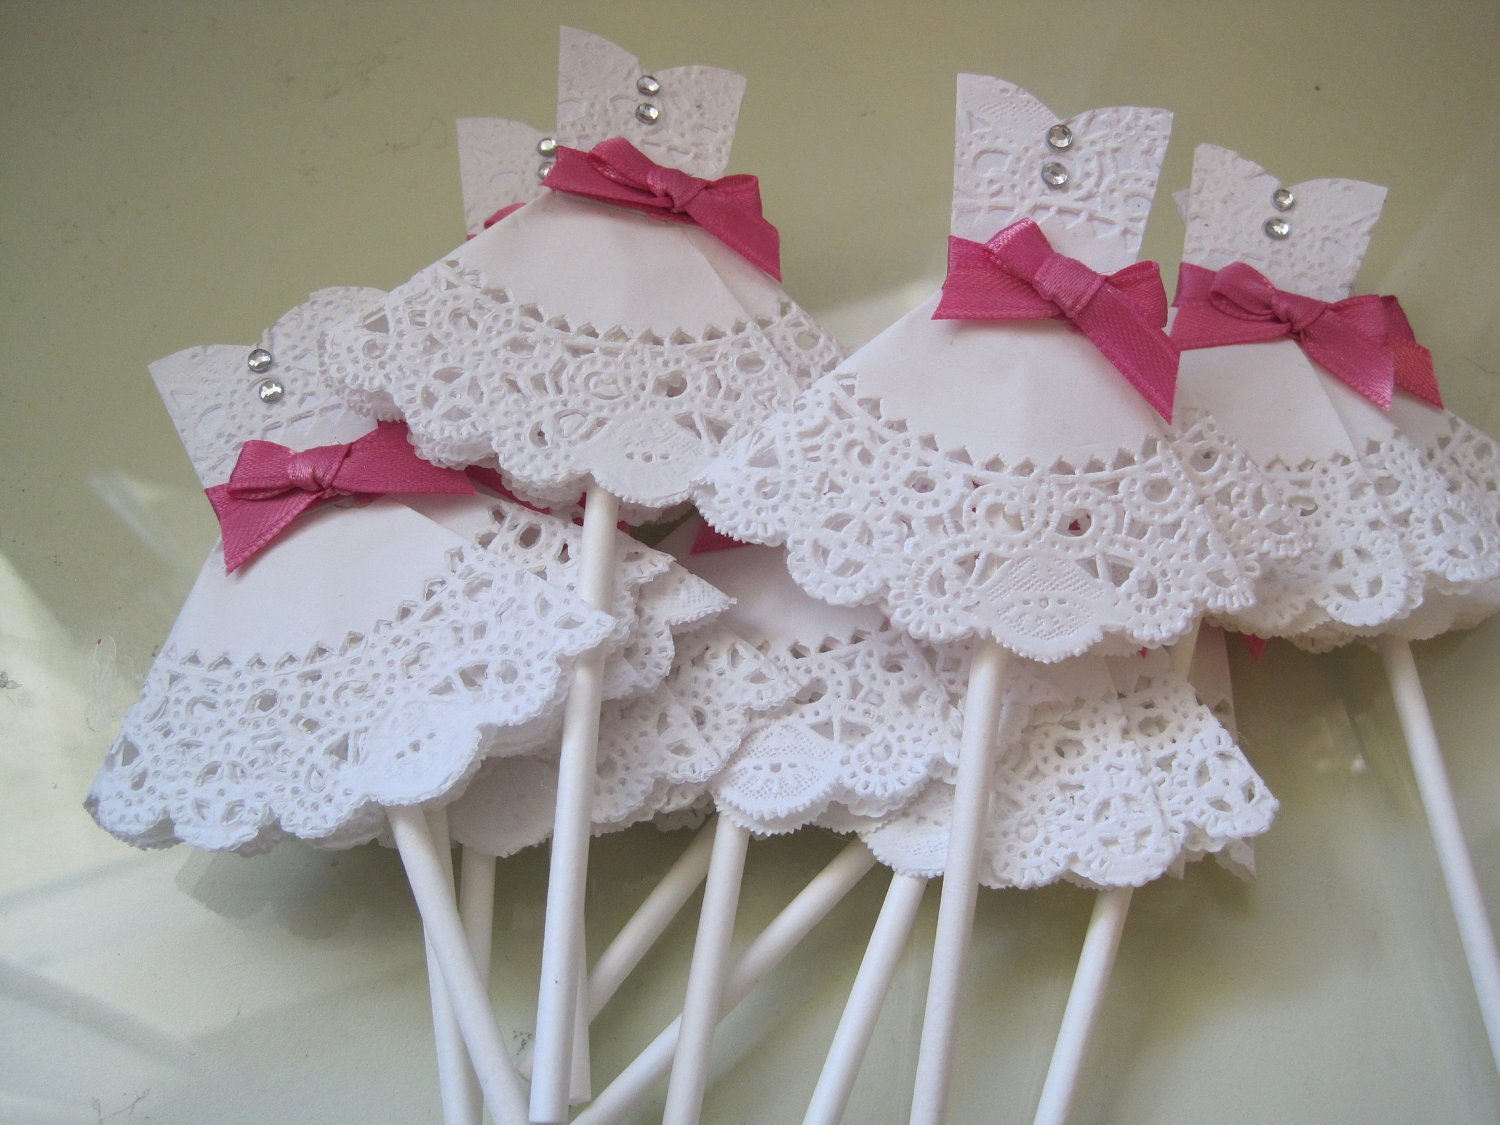 Wedding Dress Ideas: 12 Wedding Dress Cupcake Toppers